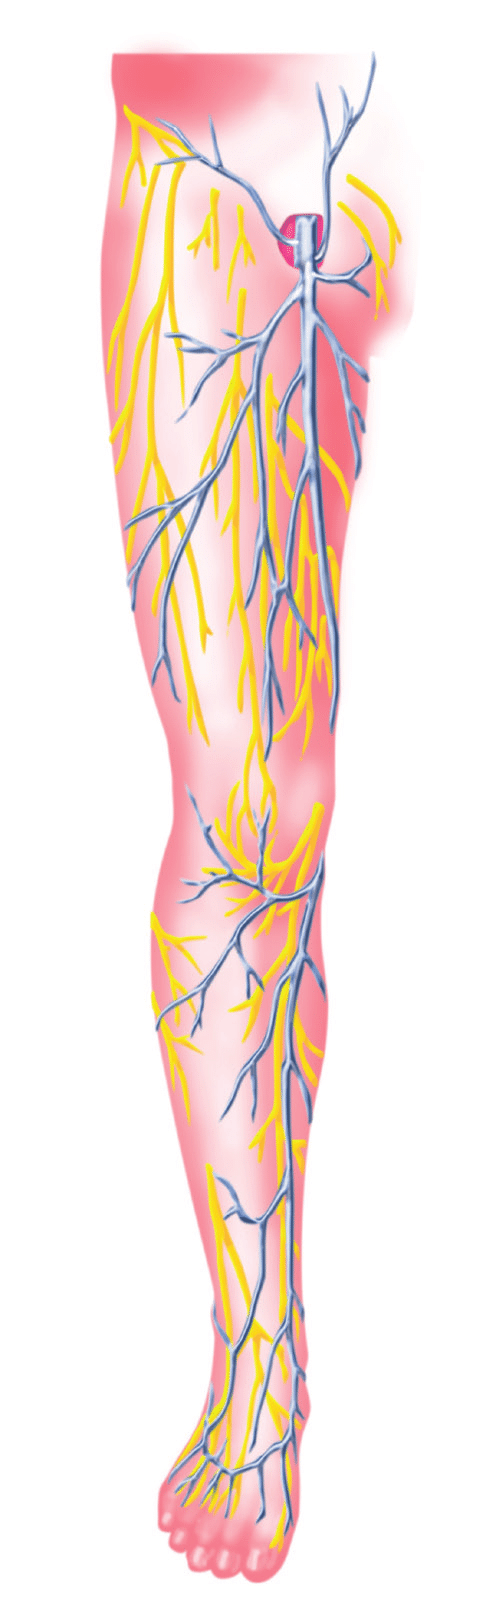 medium resolution of 1 superficial veins of the lower extremity